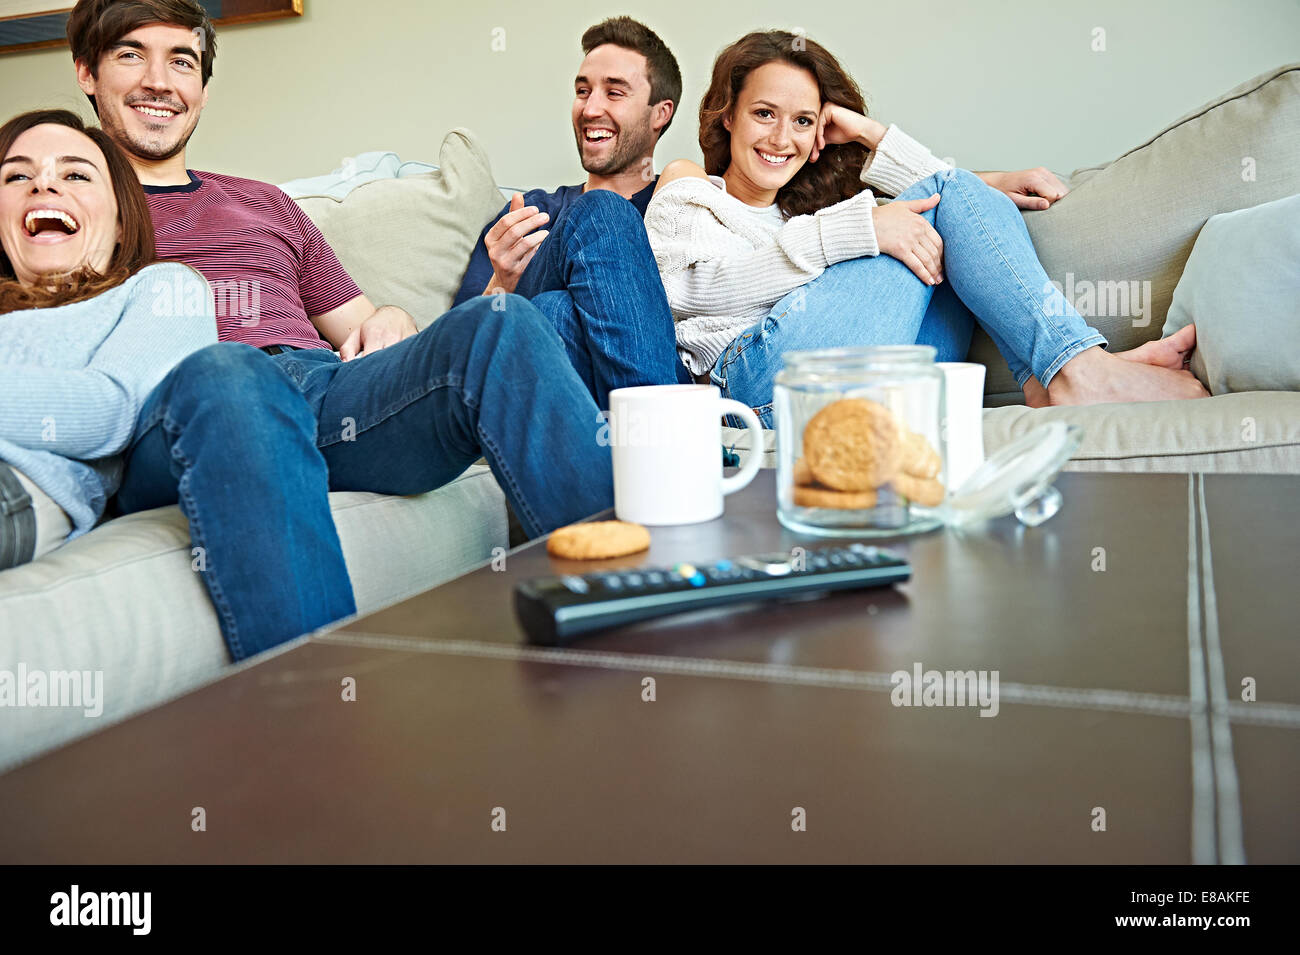 Group of friends watching sport in living room - Stock Image